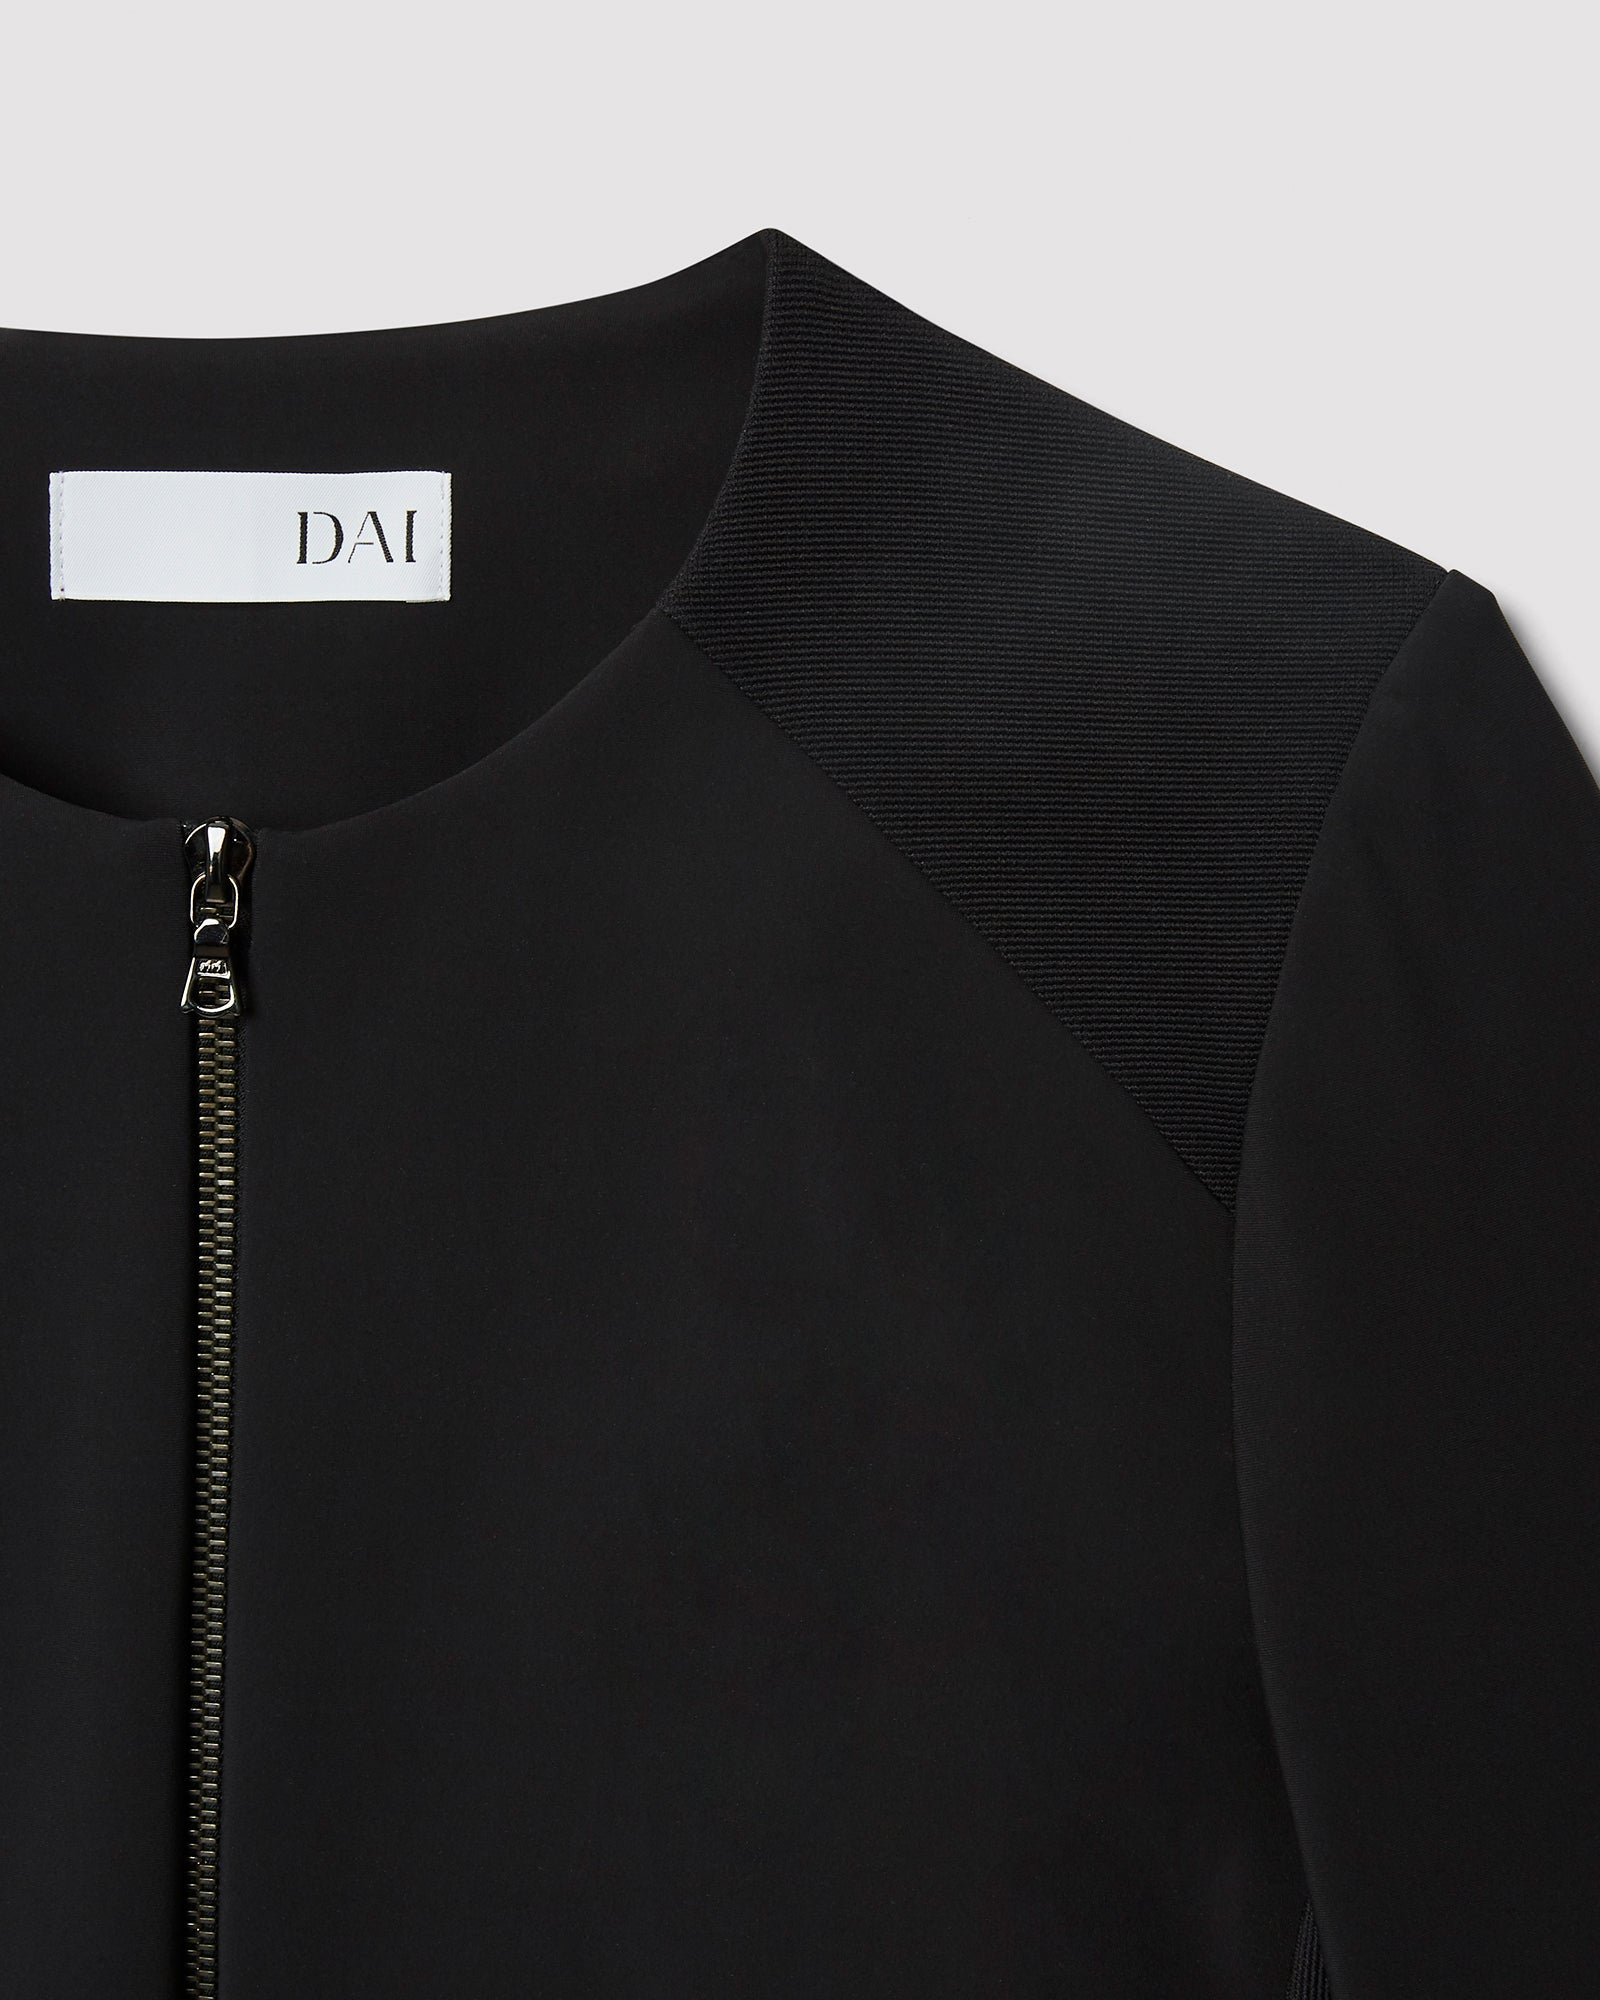 Out of the Box Commuter Jacket